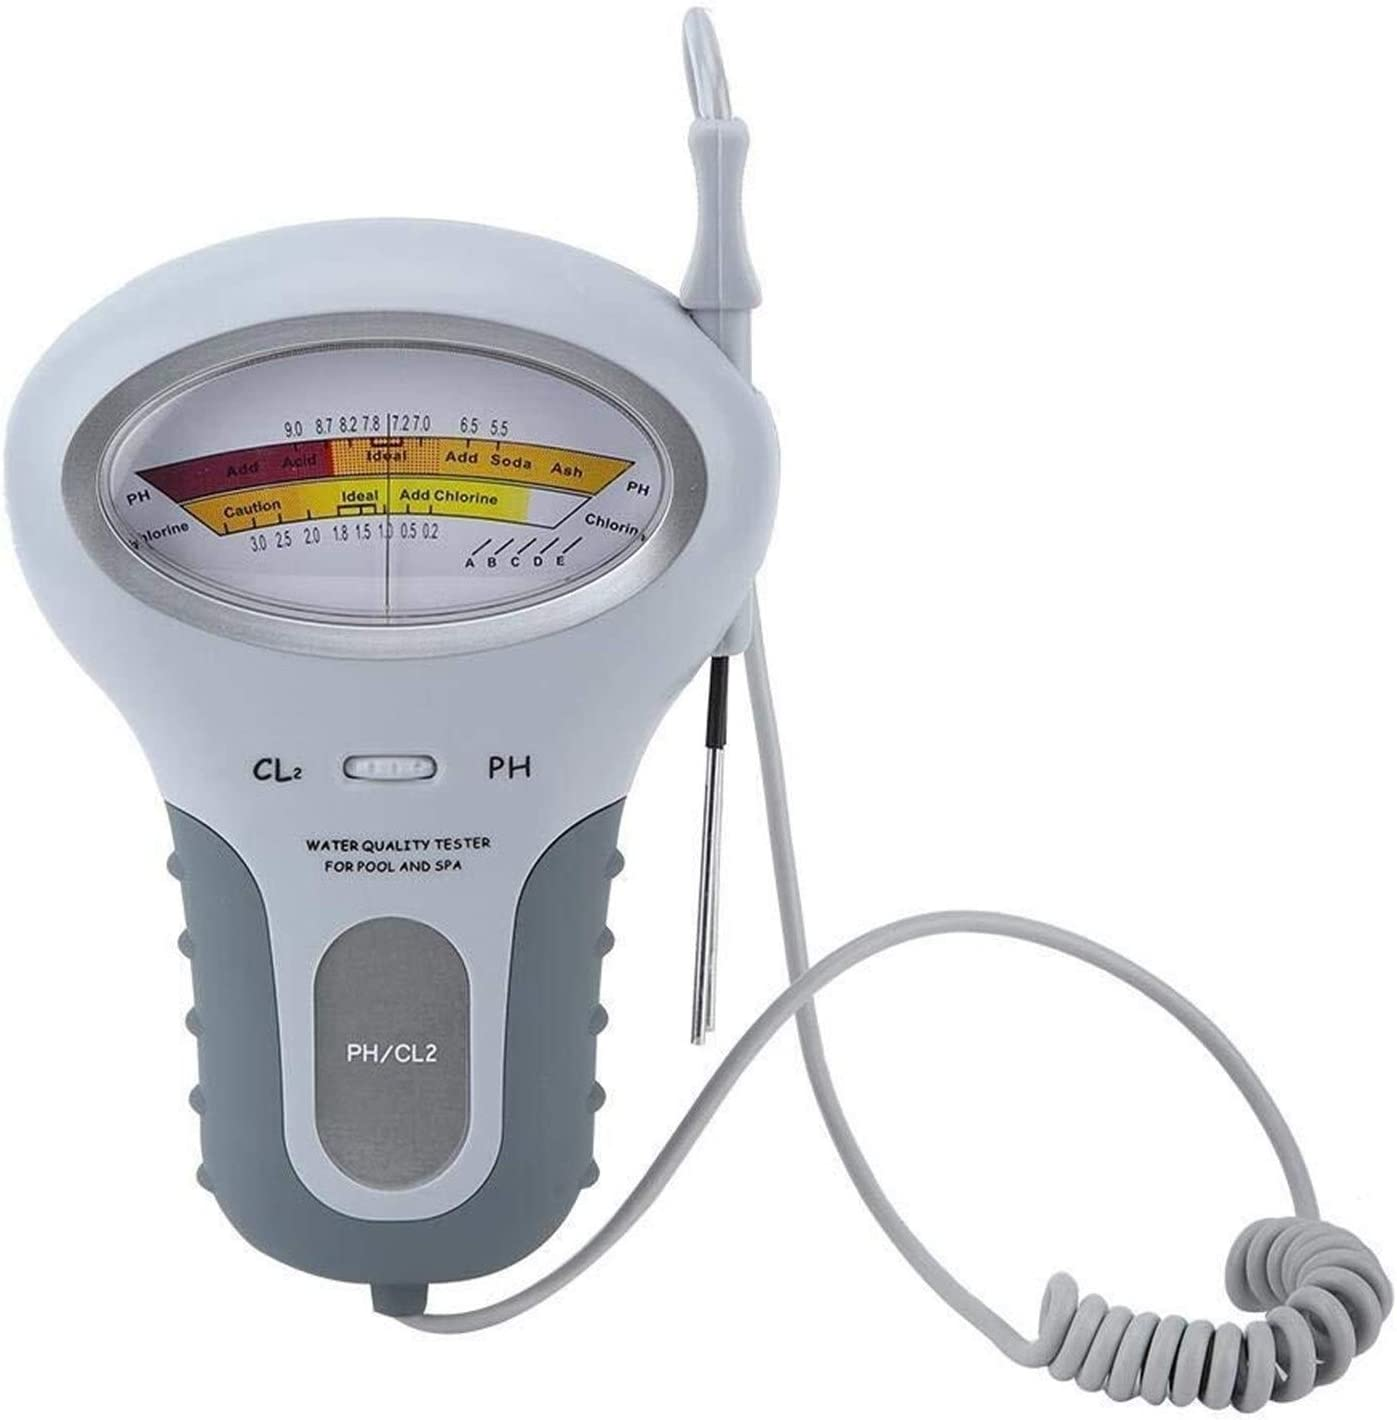 Boston Mall YJYGR PH Super sale period limited CL Chlorine Tester Quality Mete Tester,Water